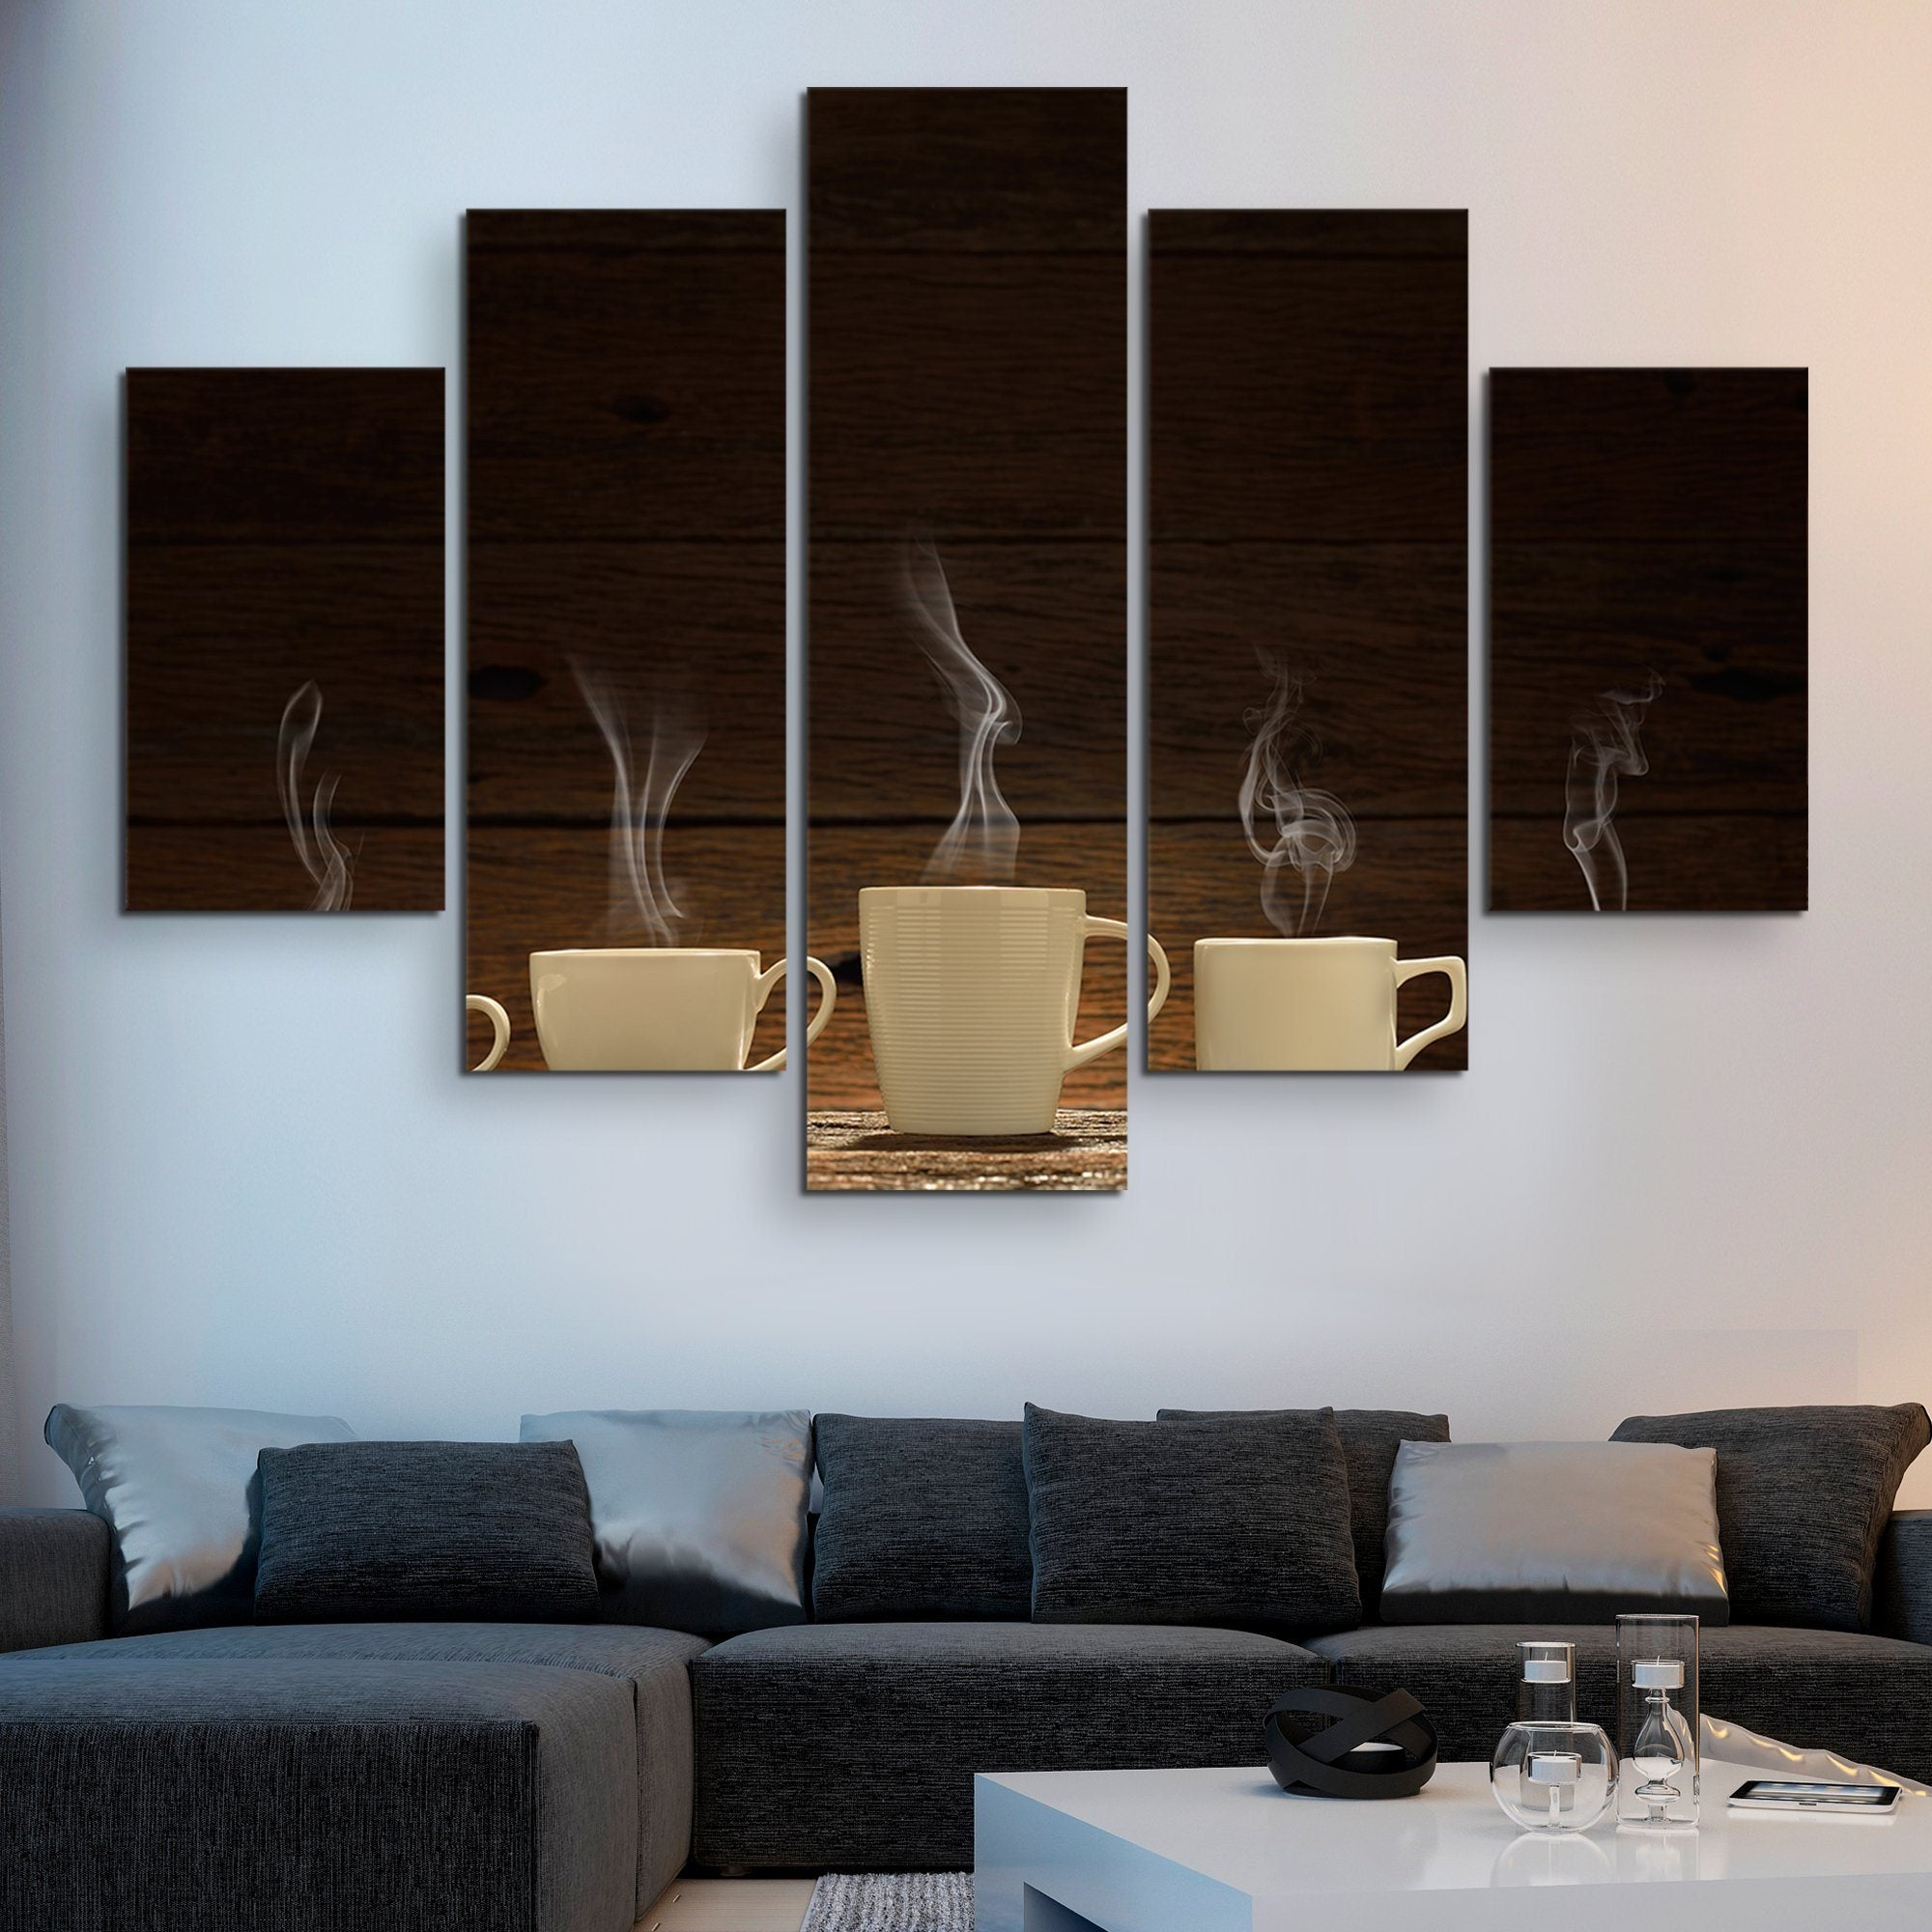 5 piece Variety of Cups wall art